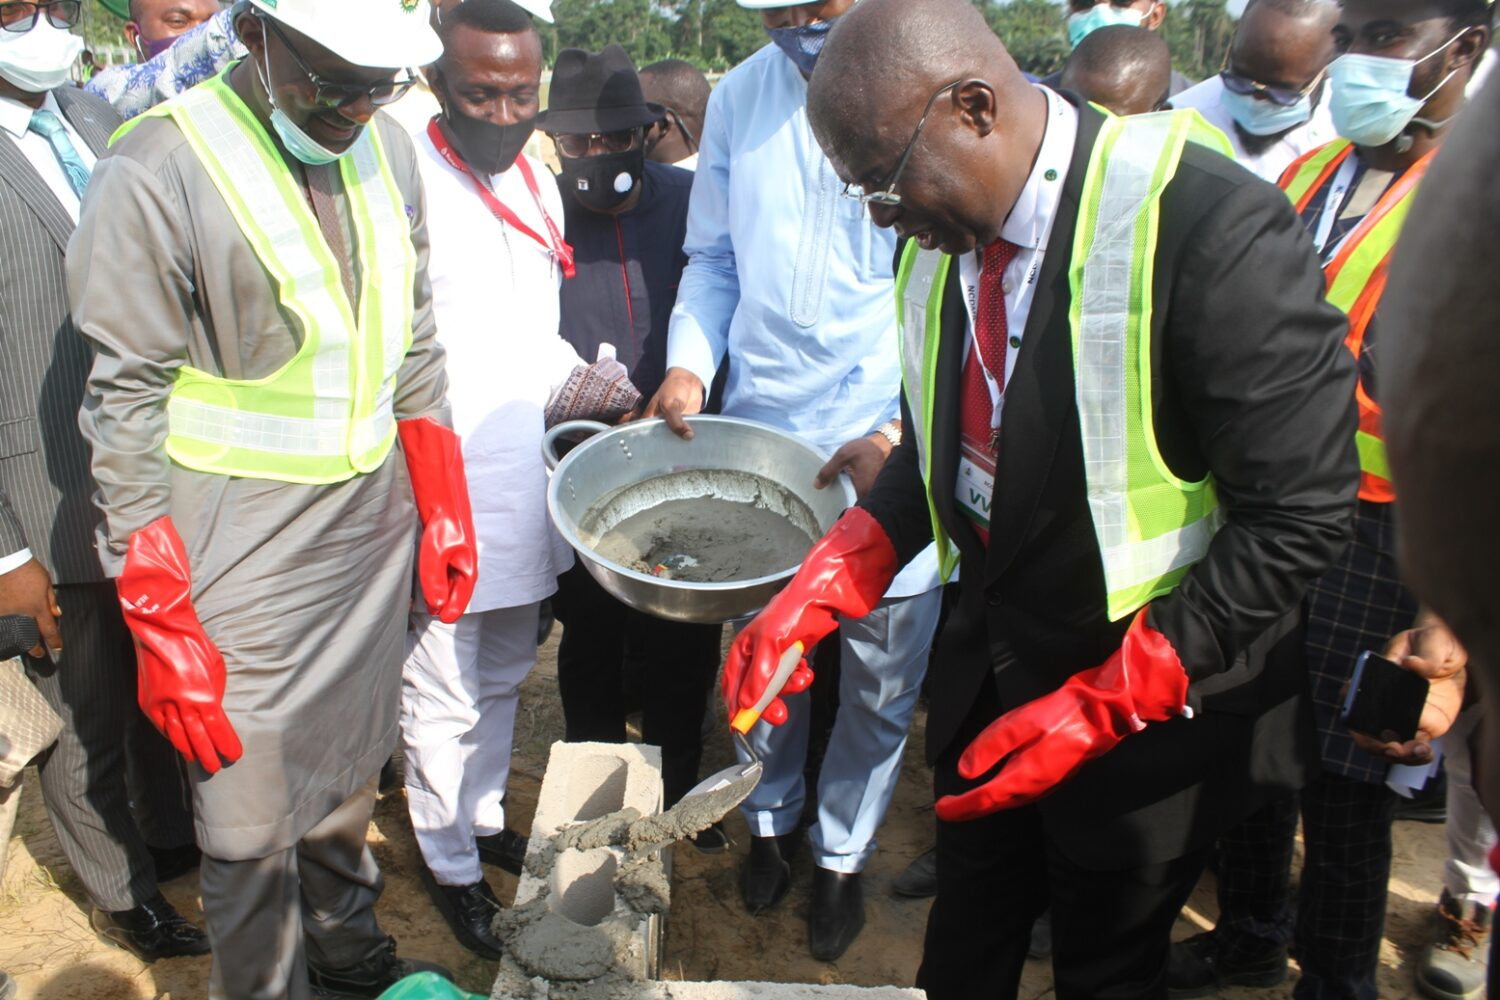 Minister of State for Petroleum Resources, Chief Timipre Sylva performing the groundbreaking of the Rungas LPG Composite Cylinder Manufacturing plant, located inside the NCDMB Gas Hub at Polaku community, Bayelsa state.